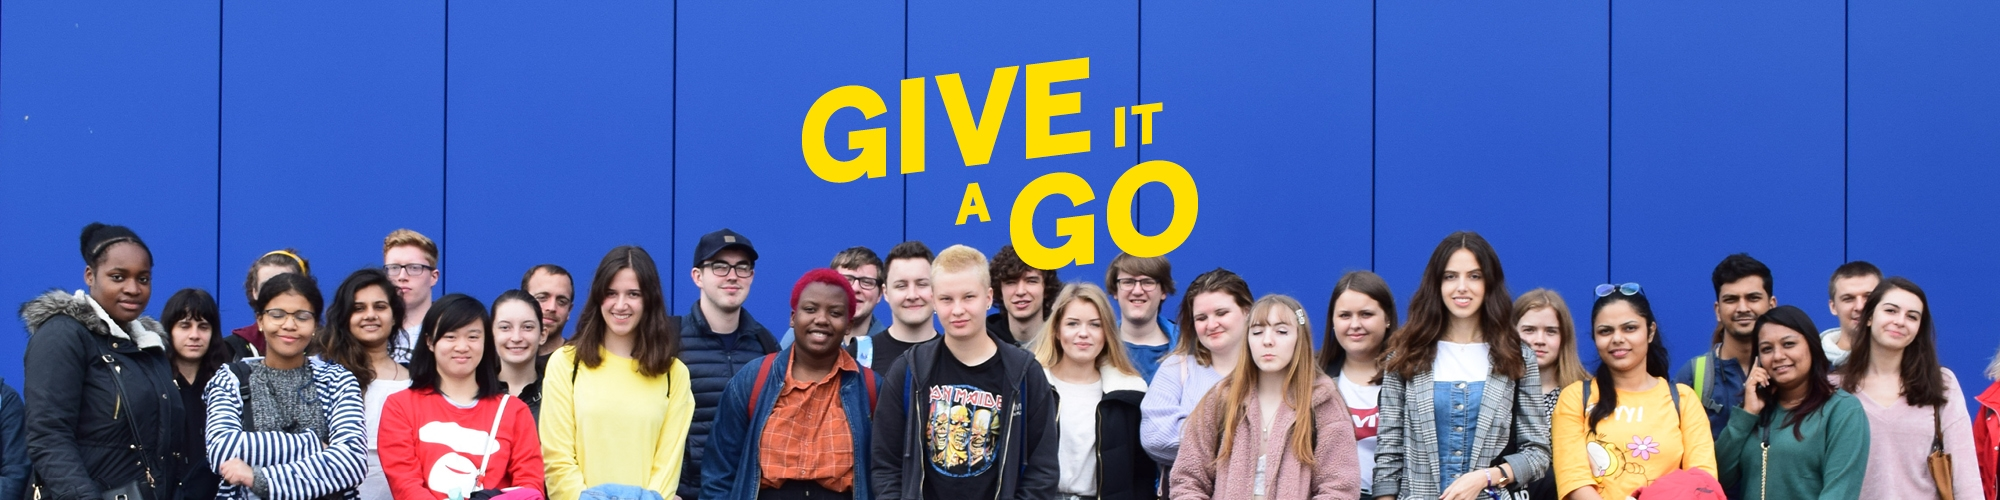 The Give It A Go programme is hand-picked to bring you the best trips, events and activities at student-friendly prices